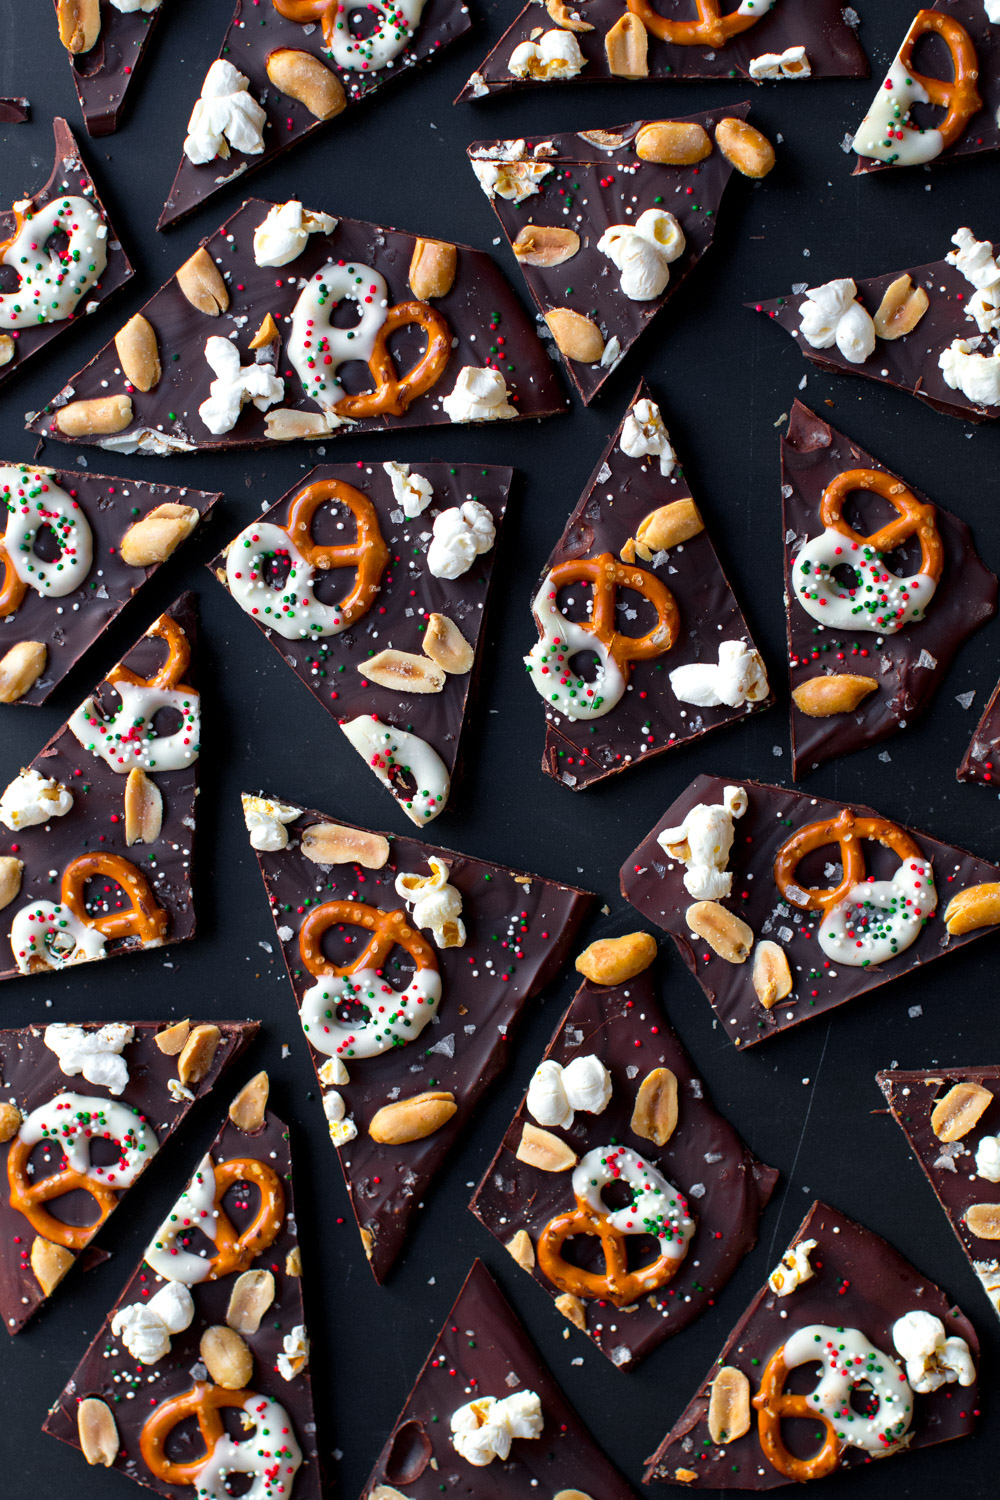 Snack Attack Chocolate Bark